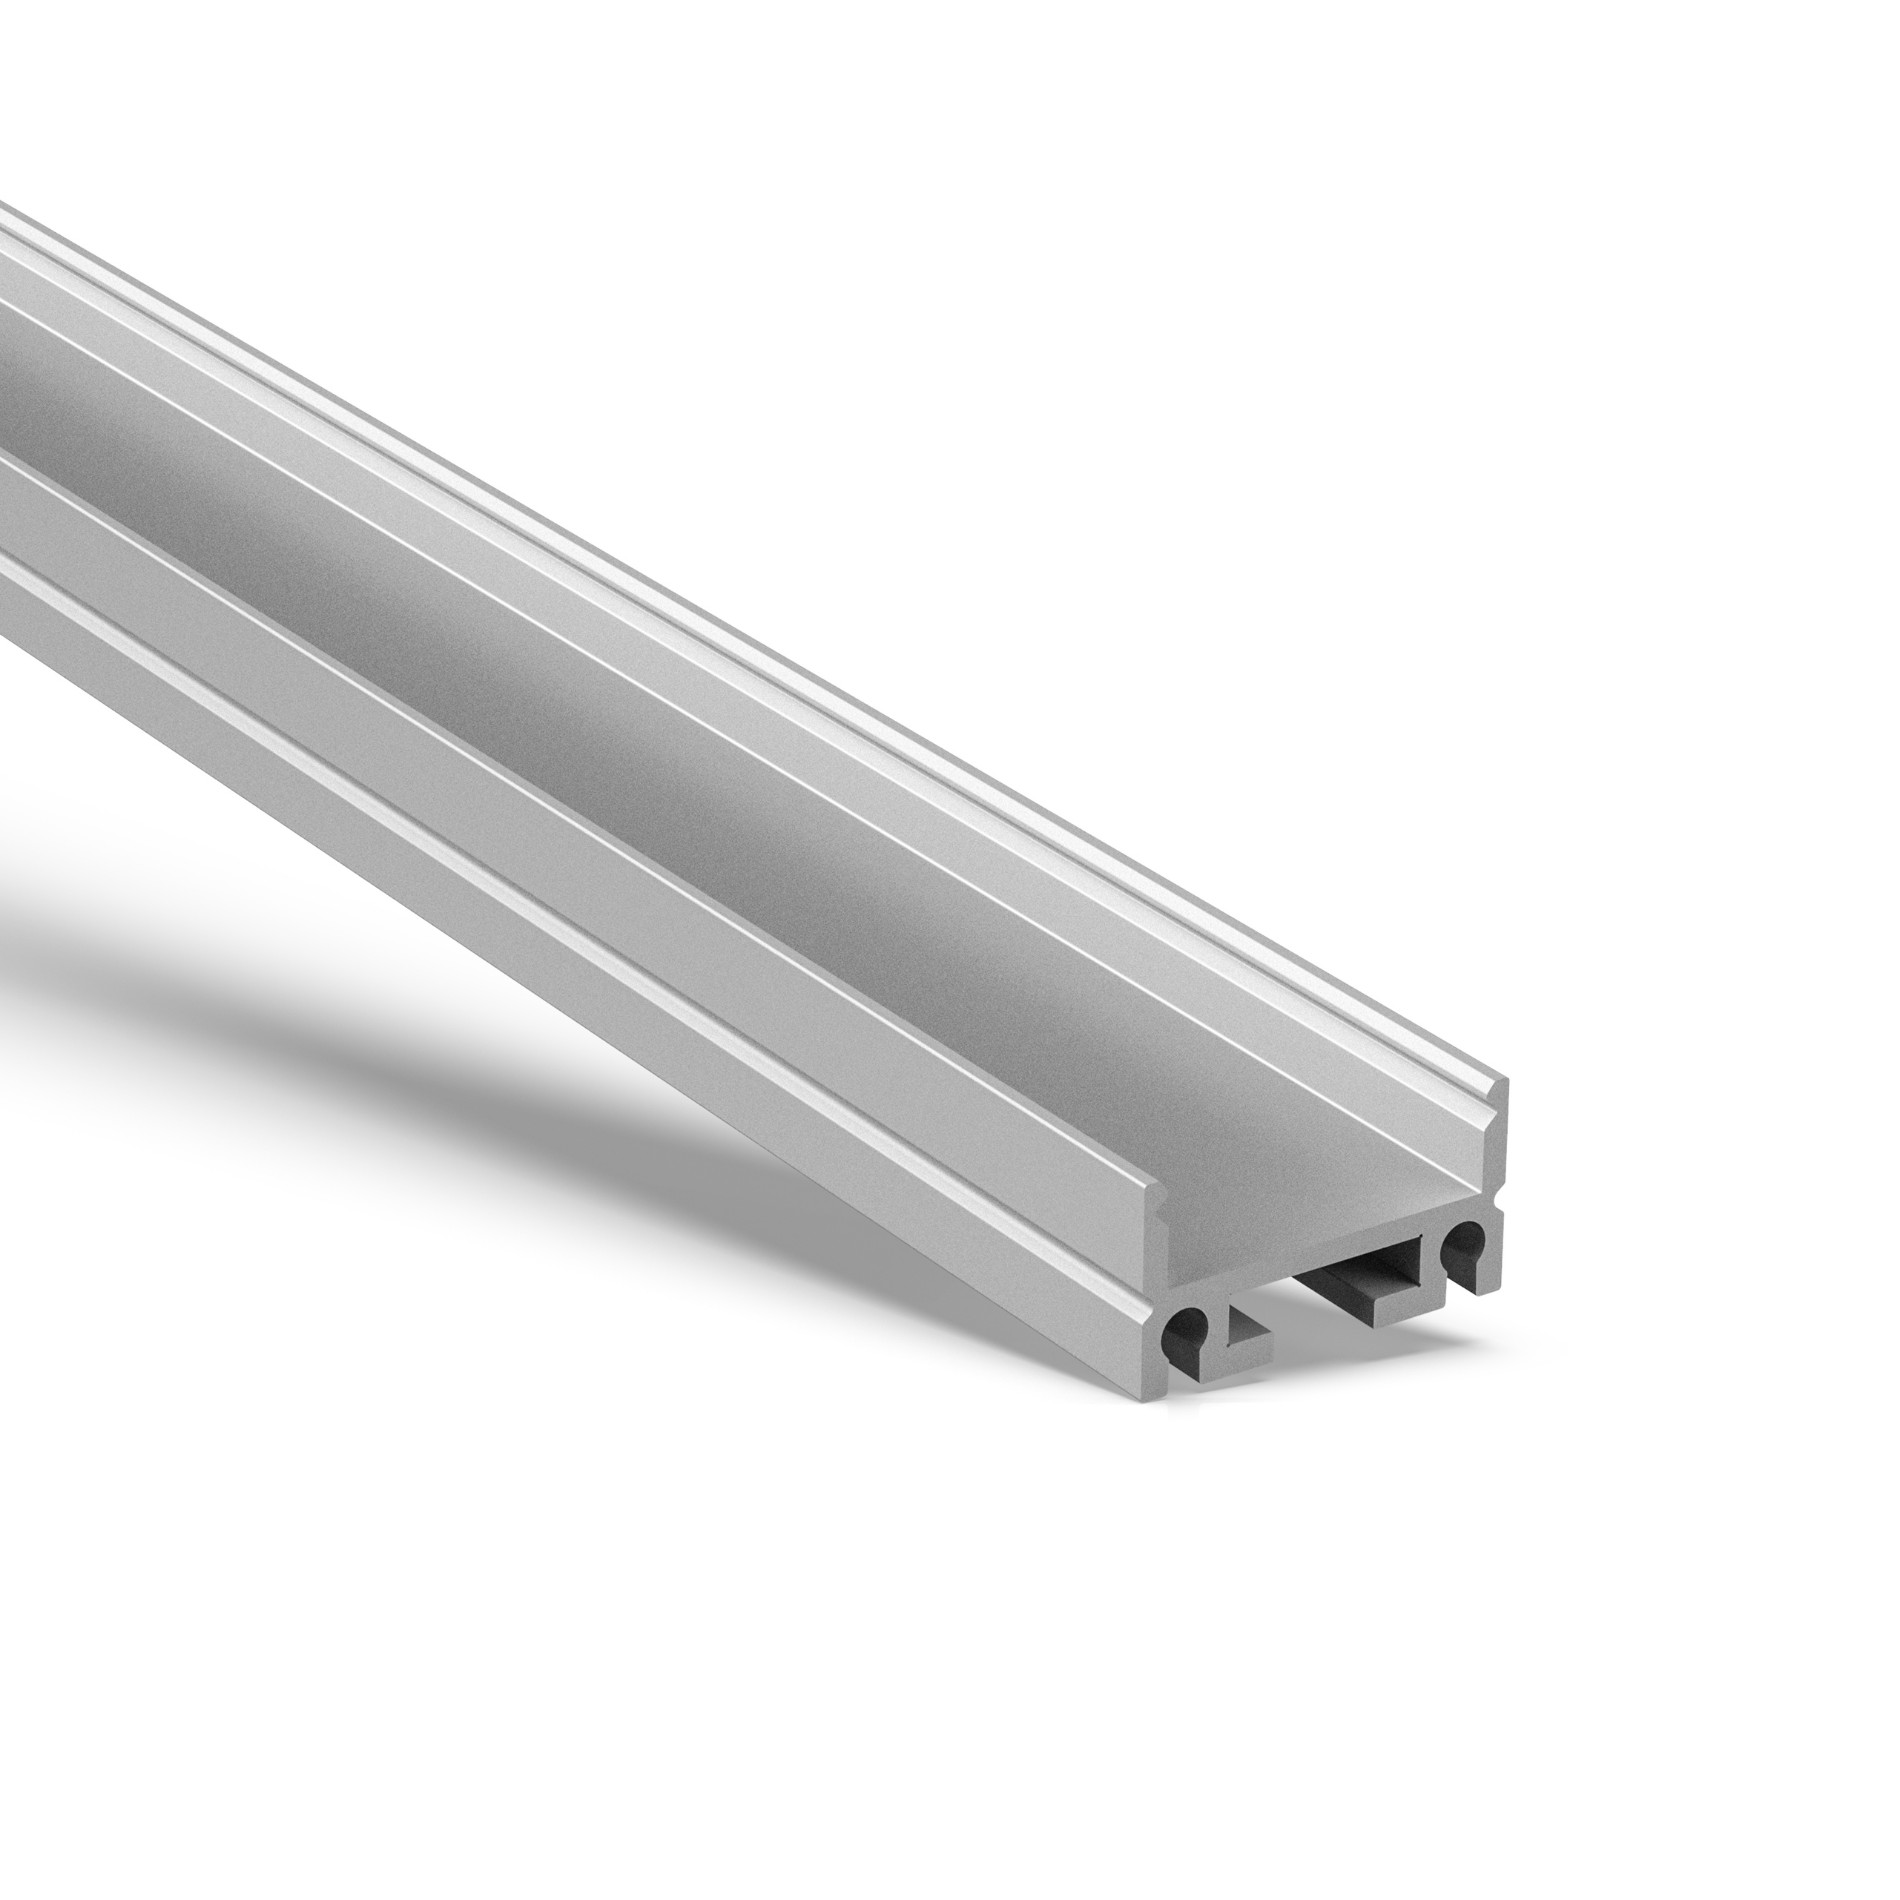 AT6 Surface square led profile 19.5x14.6mm